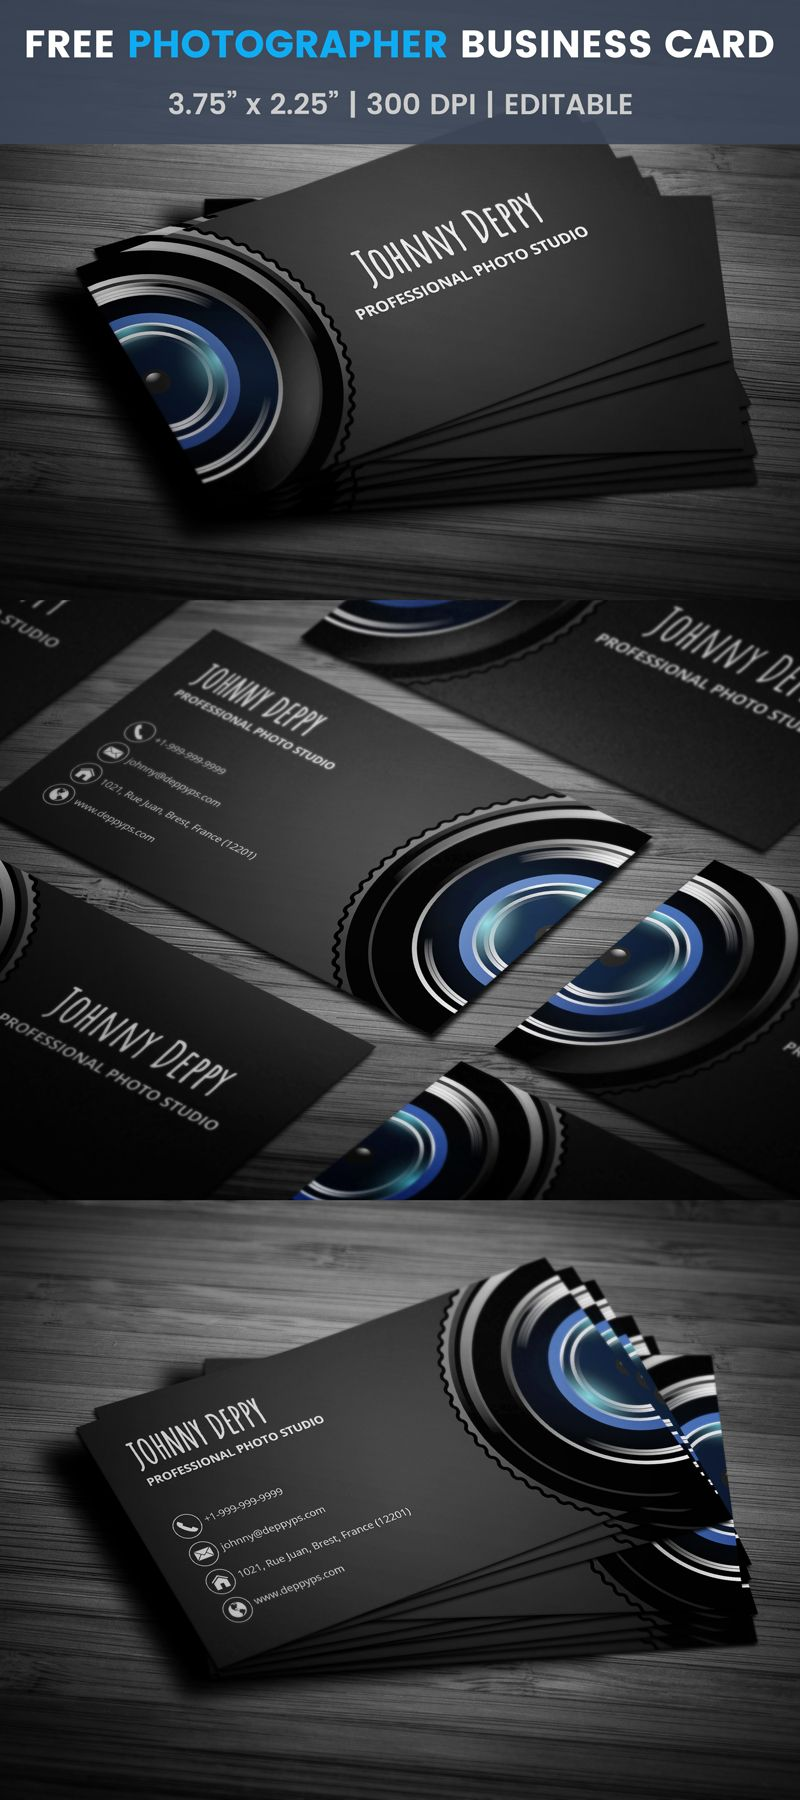 Unique side cam photography business card template click free unique side cam photography business card template click friedricerecipe Images